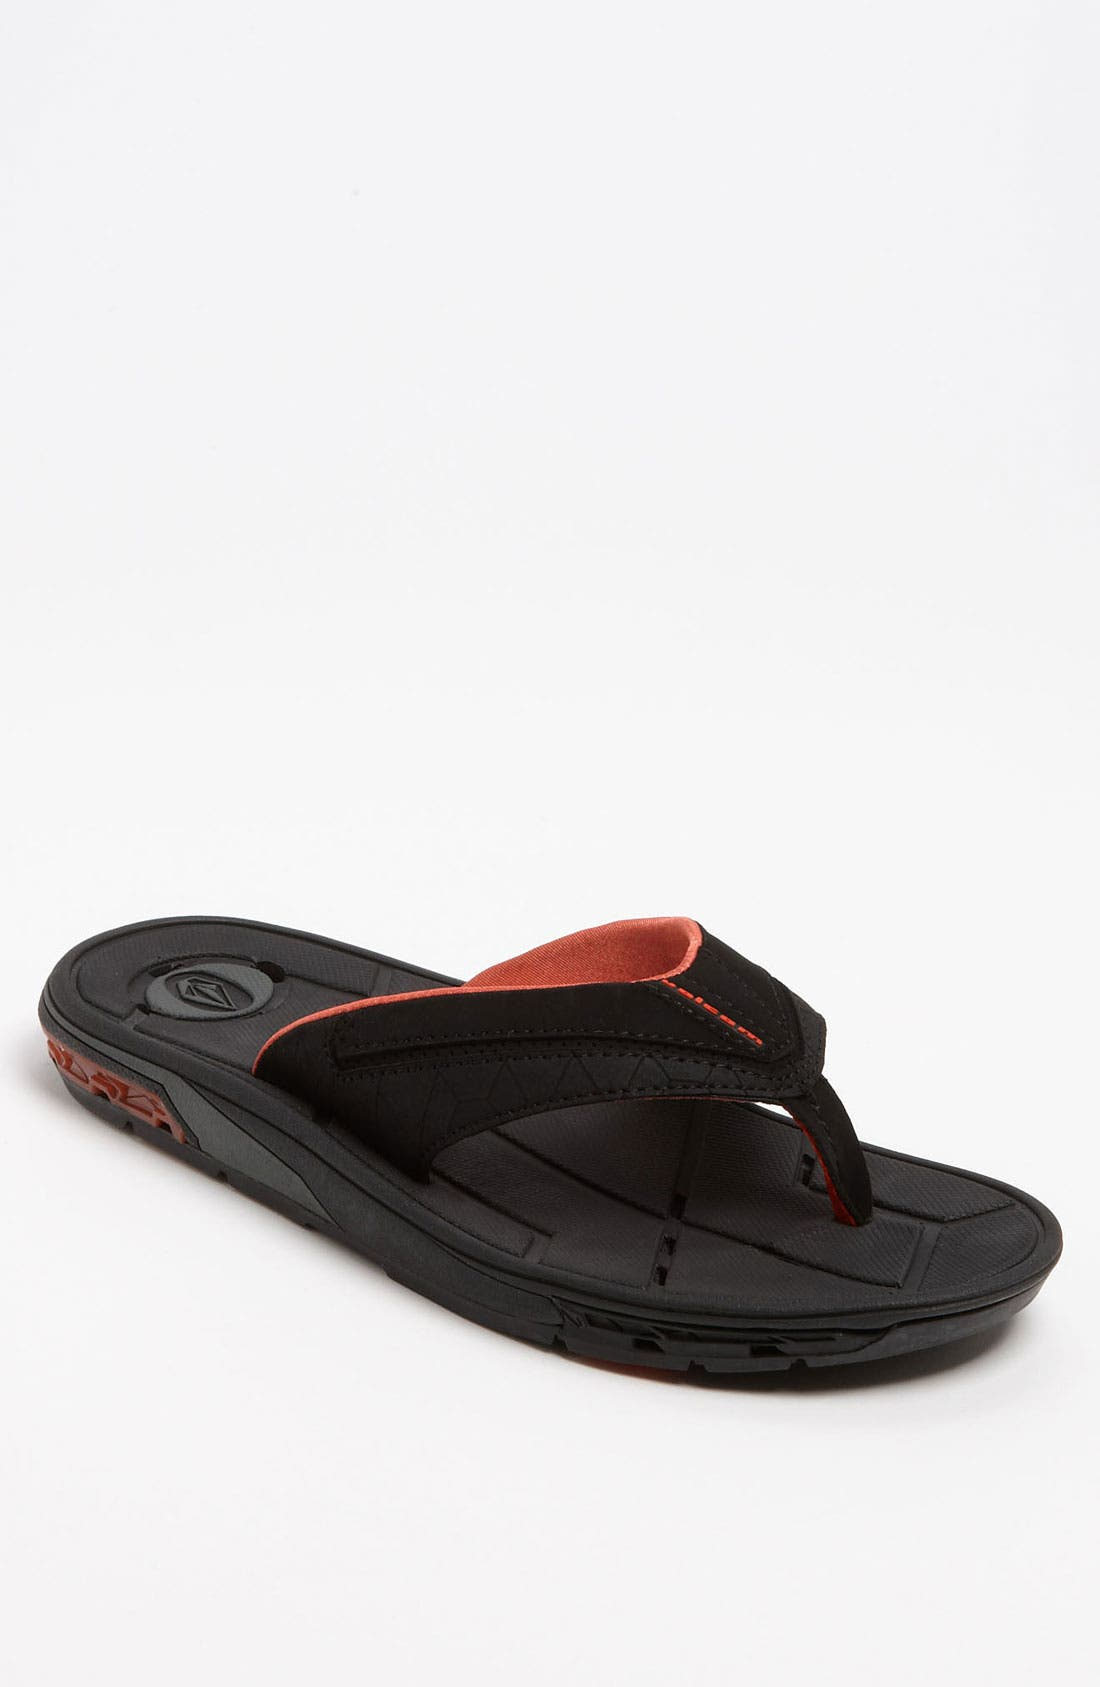 Main Image - Volcom 'Creedlers - Main Drain' Flip Flop (Online Only)